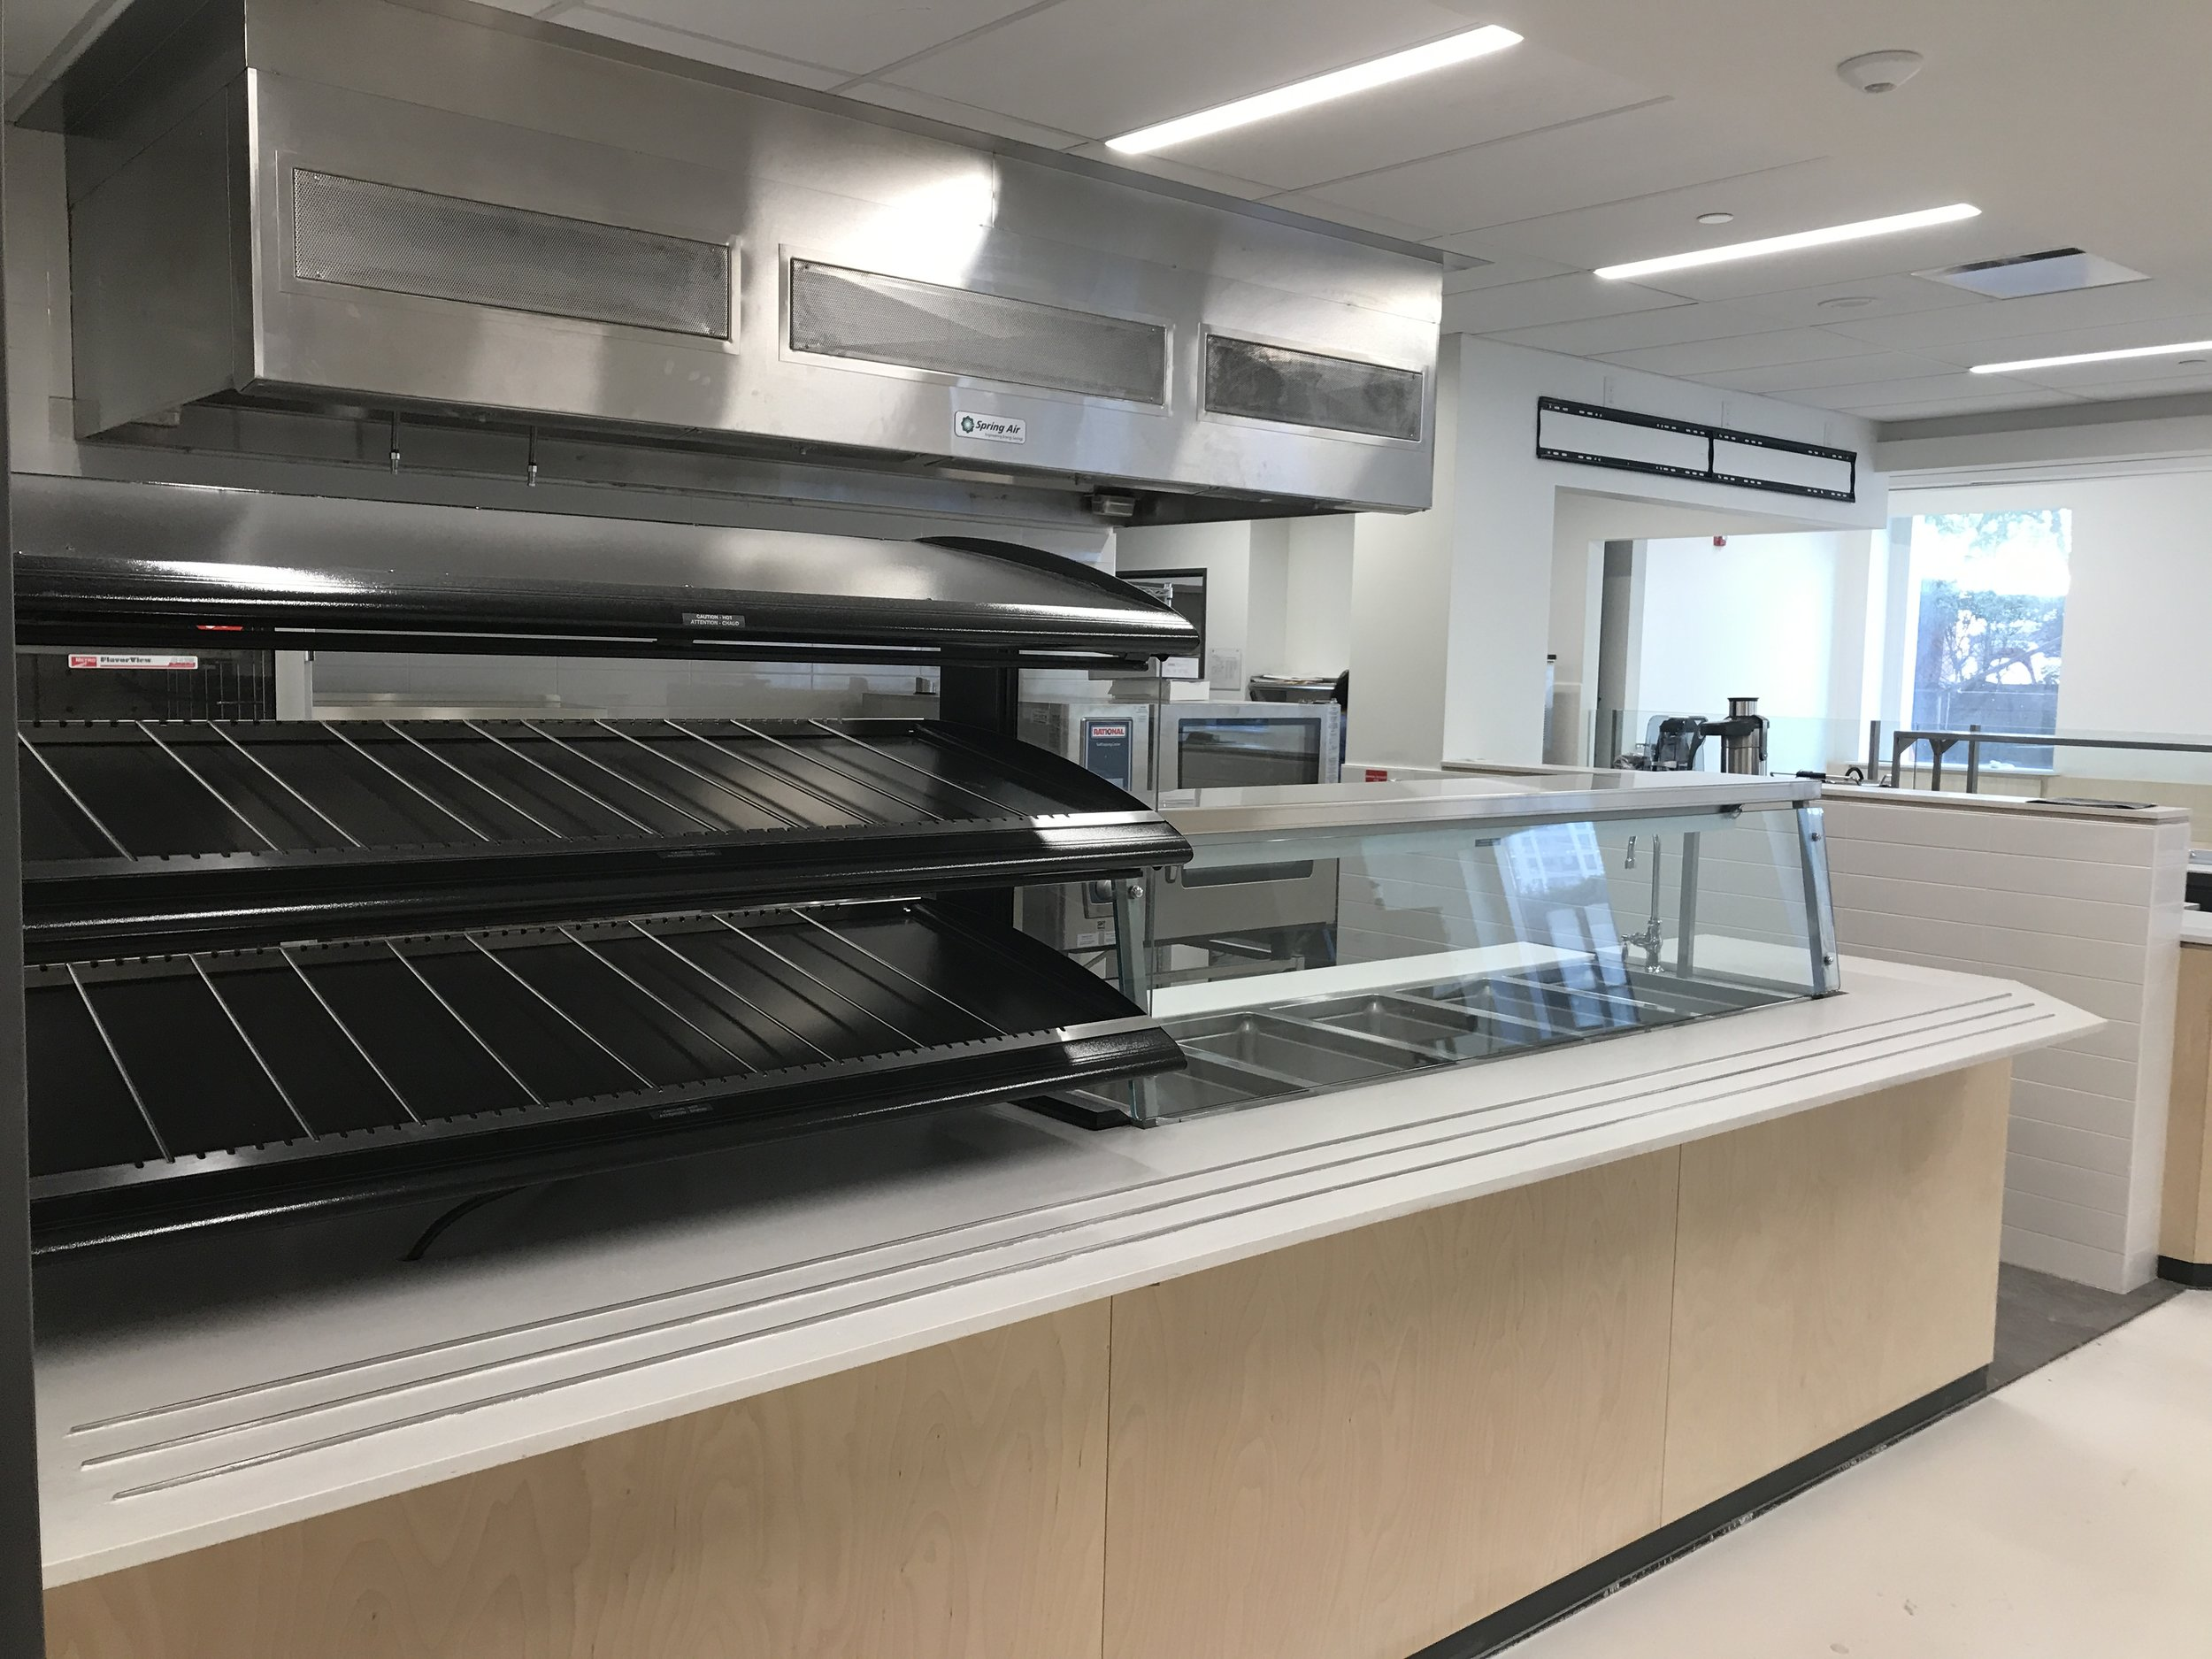 The York Cafe - Kitchen Servery & Freshii Location